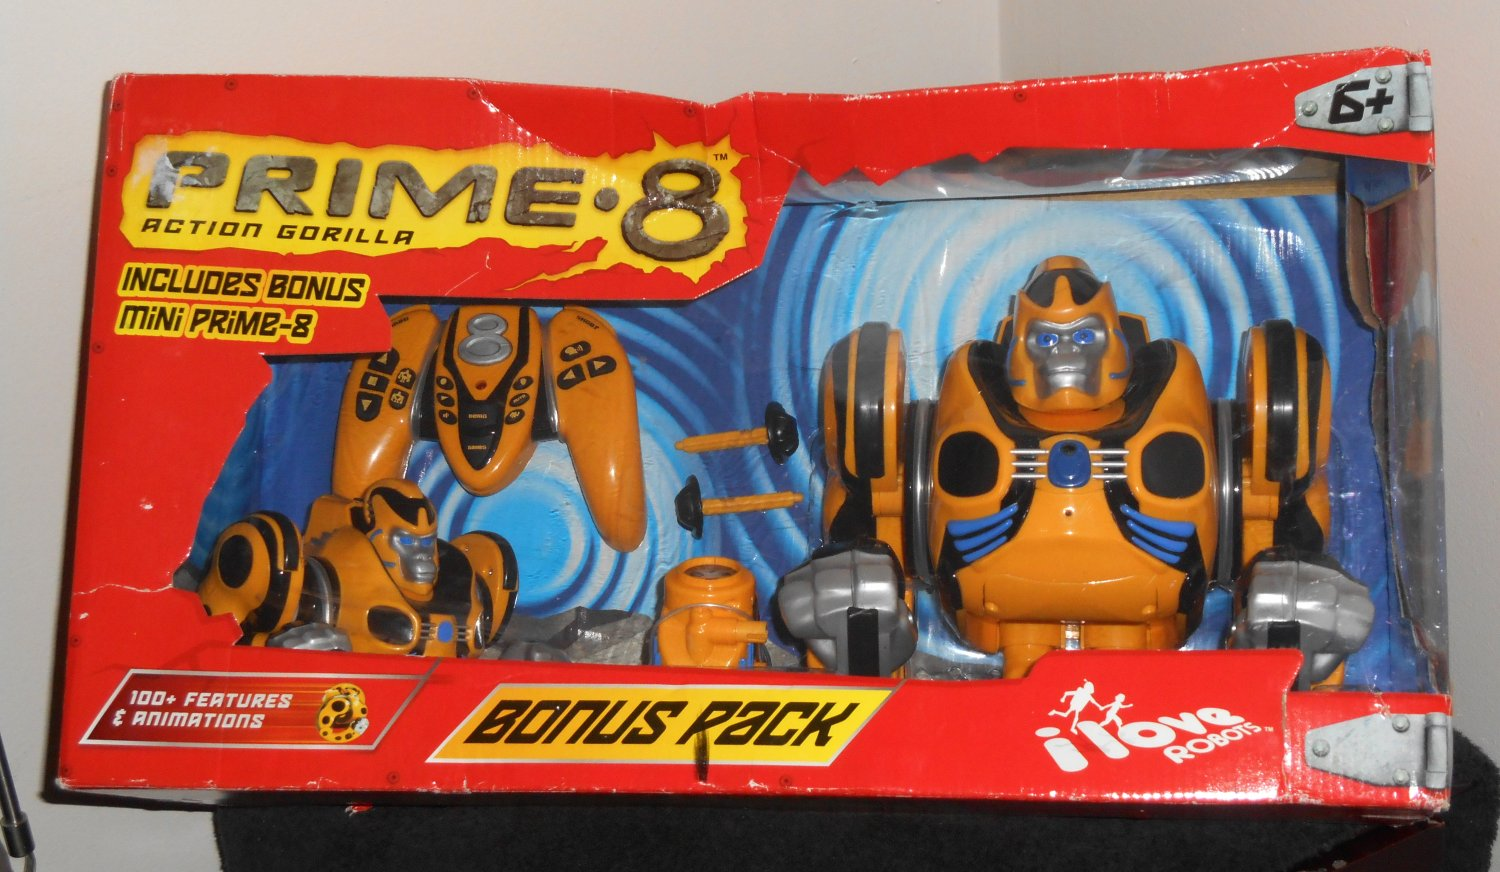 Prime 8 Eight Action Gorilla Remote Controlled Robot Bonus Pack with Mini Bossa Nova Robotics 10501